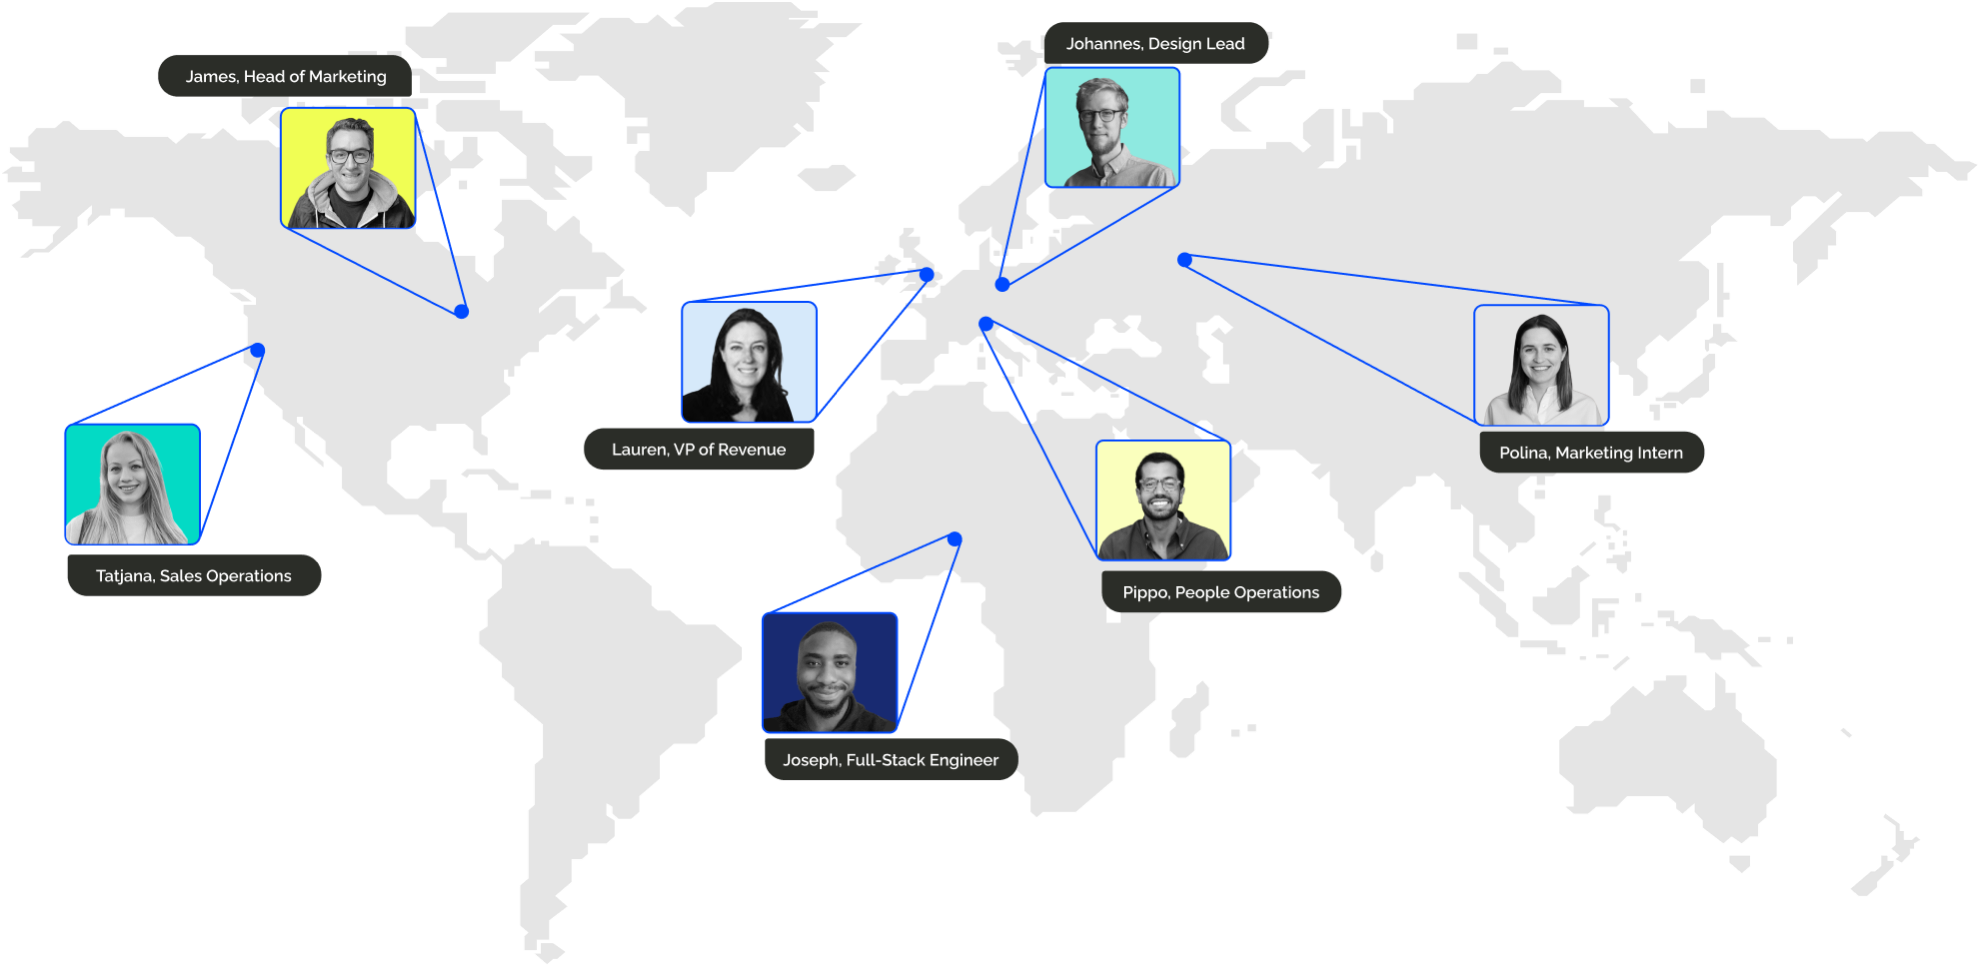 Demodesk is a global team that can work from anywhere in the world or in any of our offices in SF, Munich, or London.